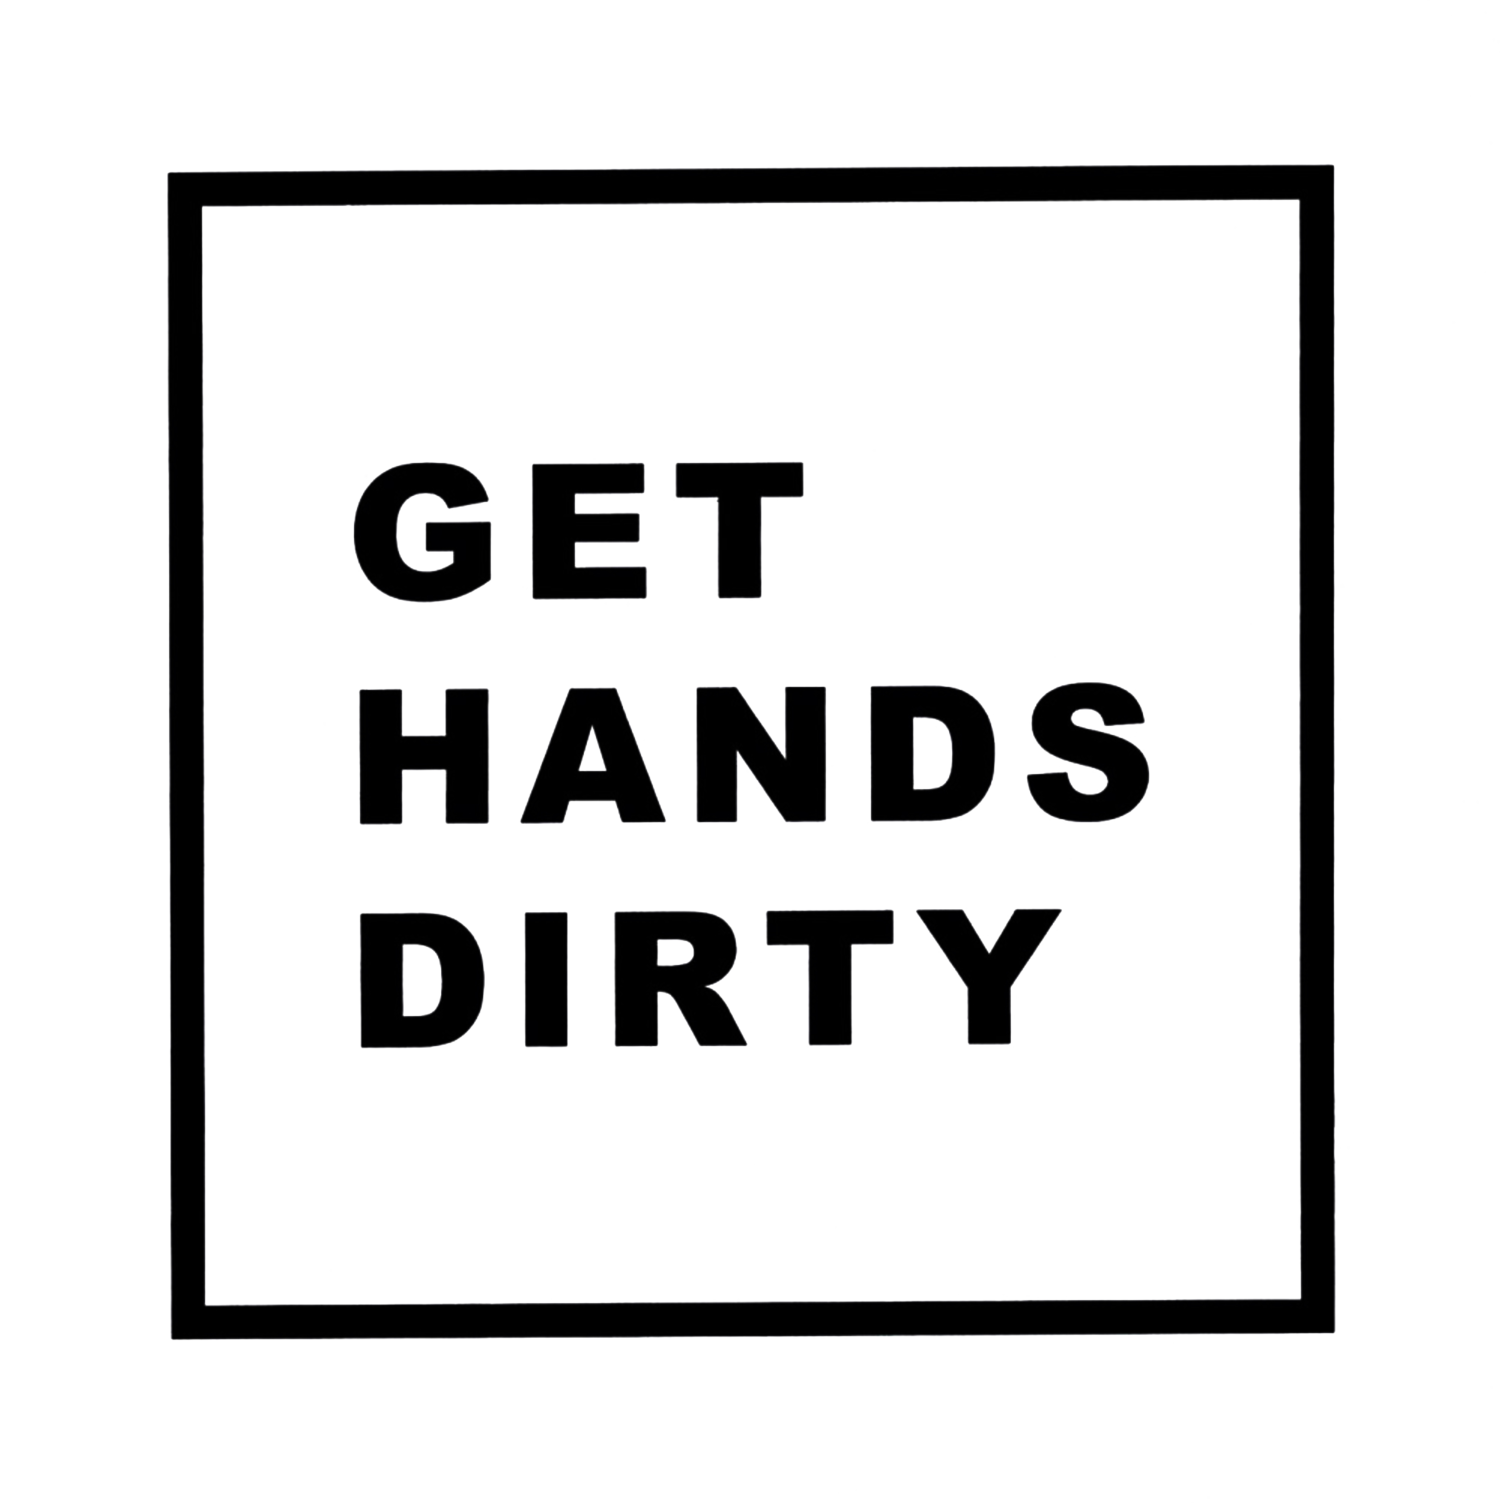 GET HANDS DIRTY